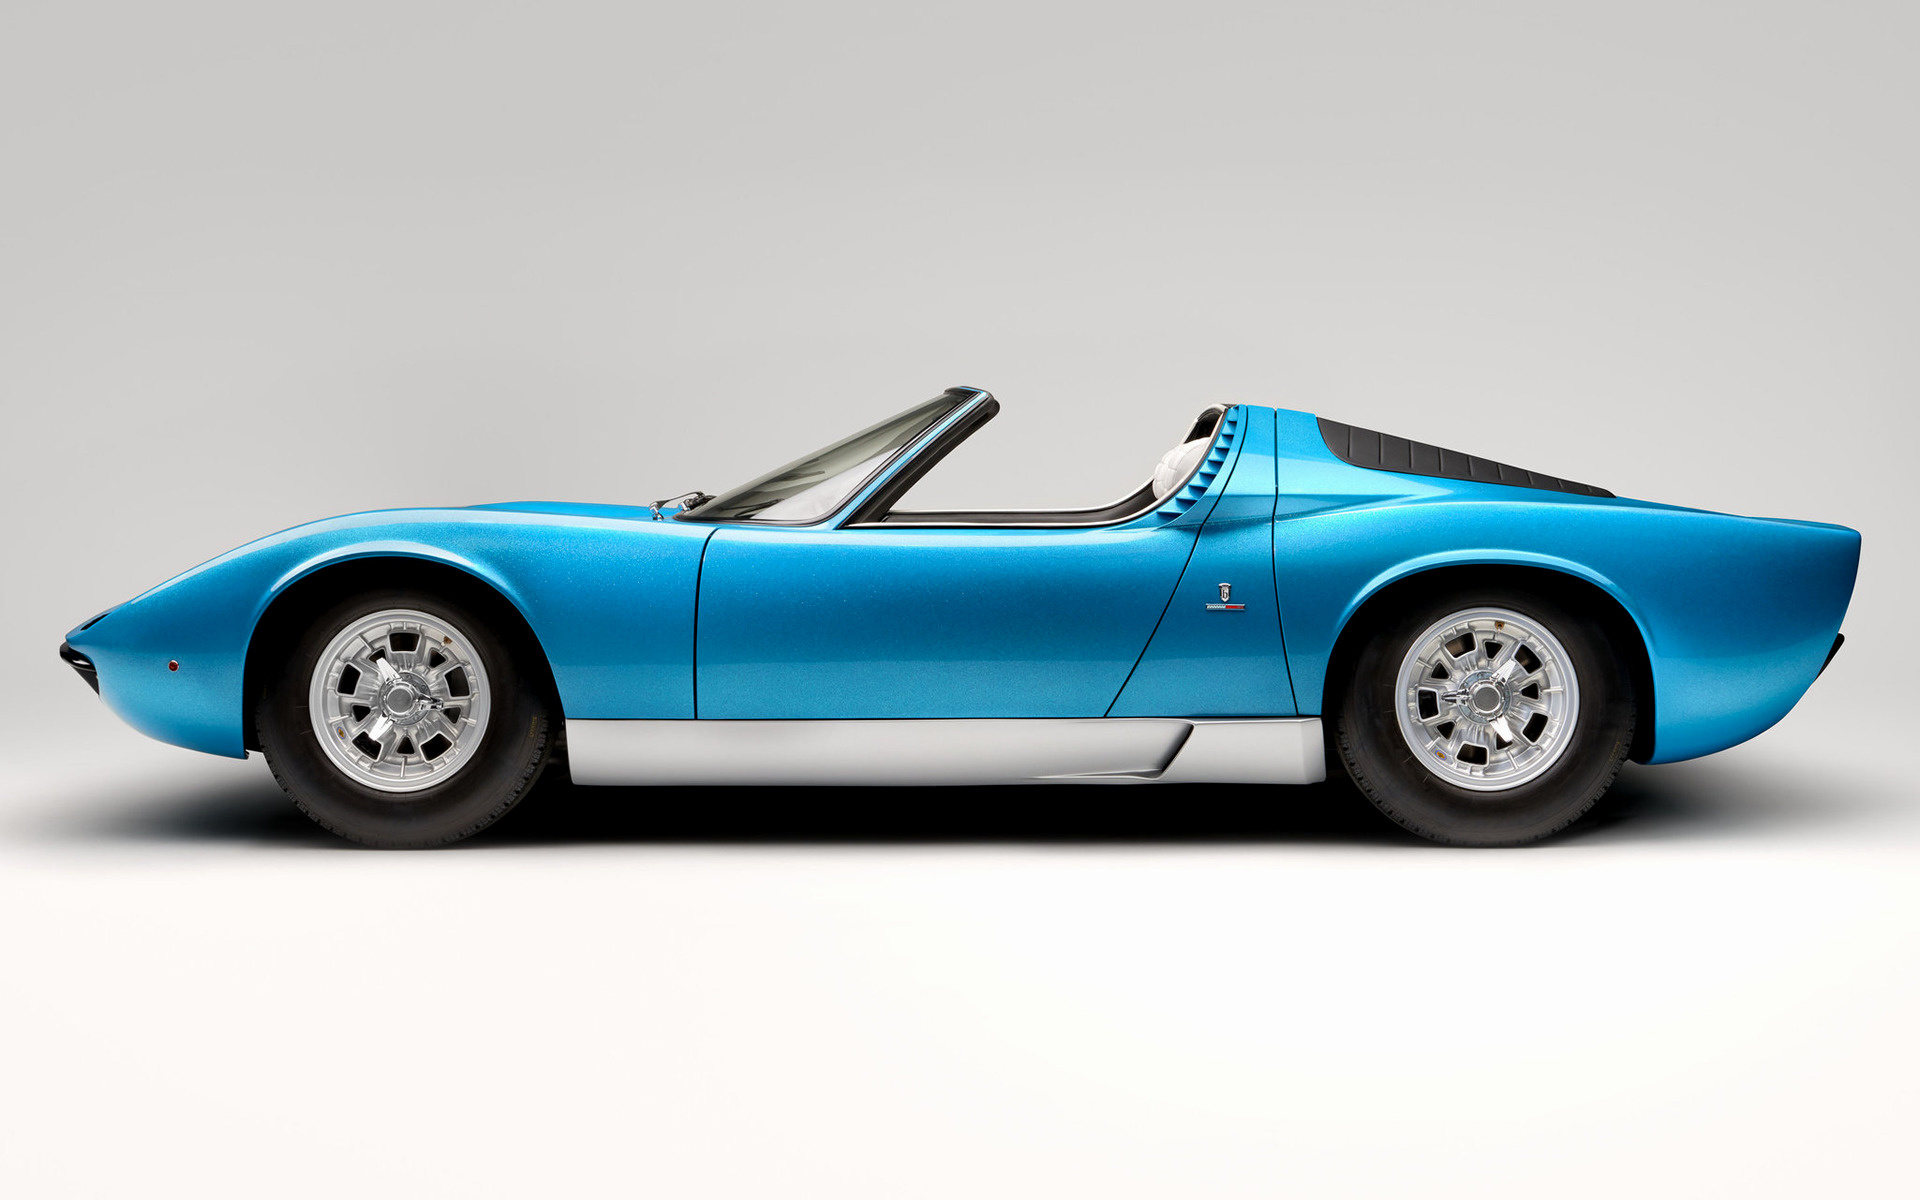 https://www.carpixel.net/w/3f889e855bc798f843ba08dfe6915637/lamborghini-miura-roadster-car-wallpaper-72244.jpg